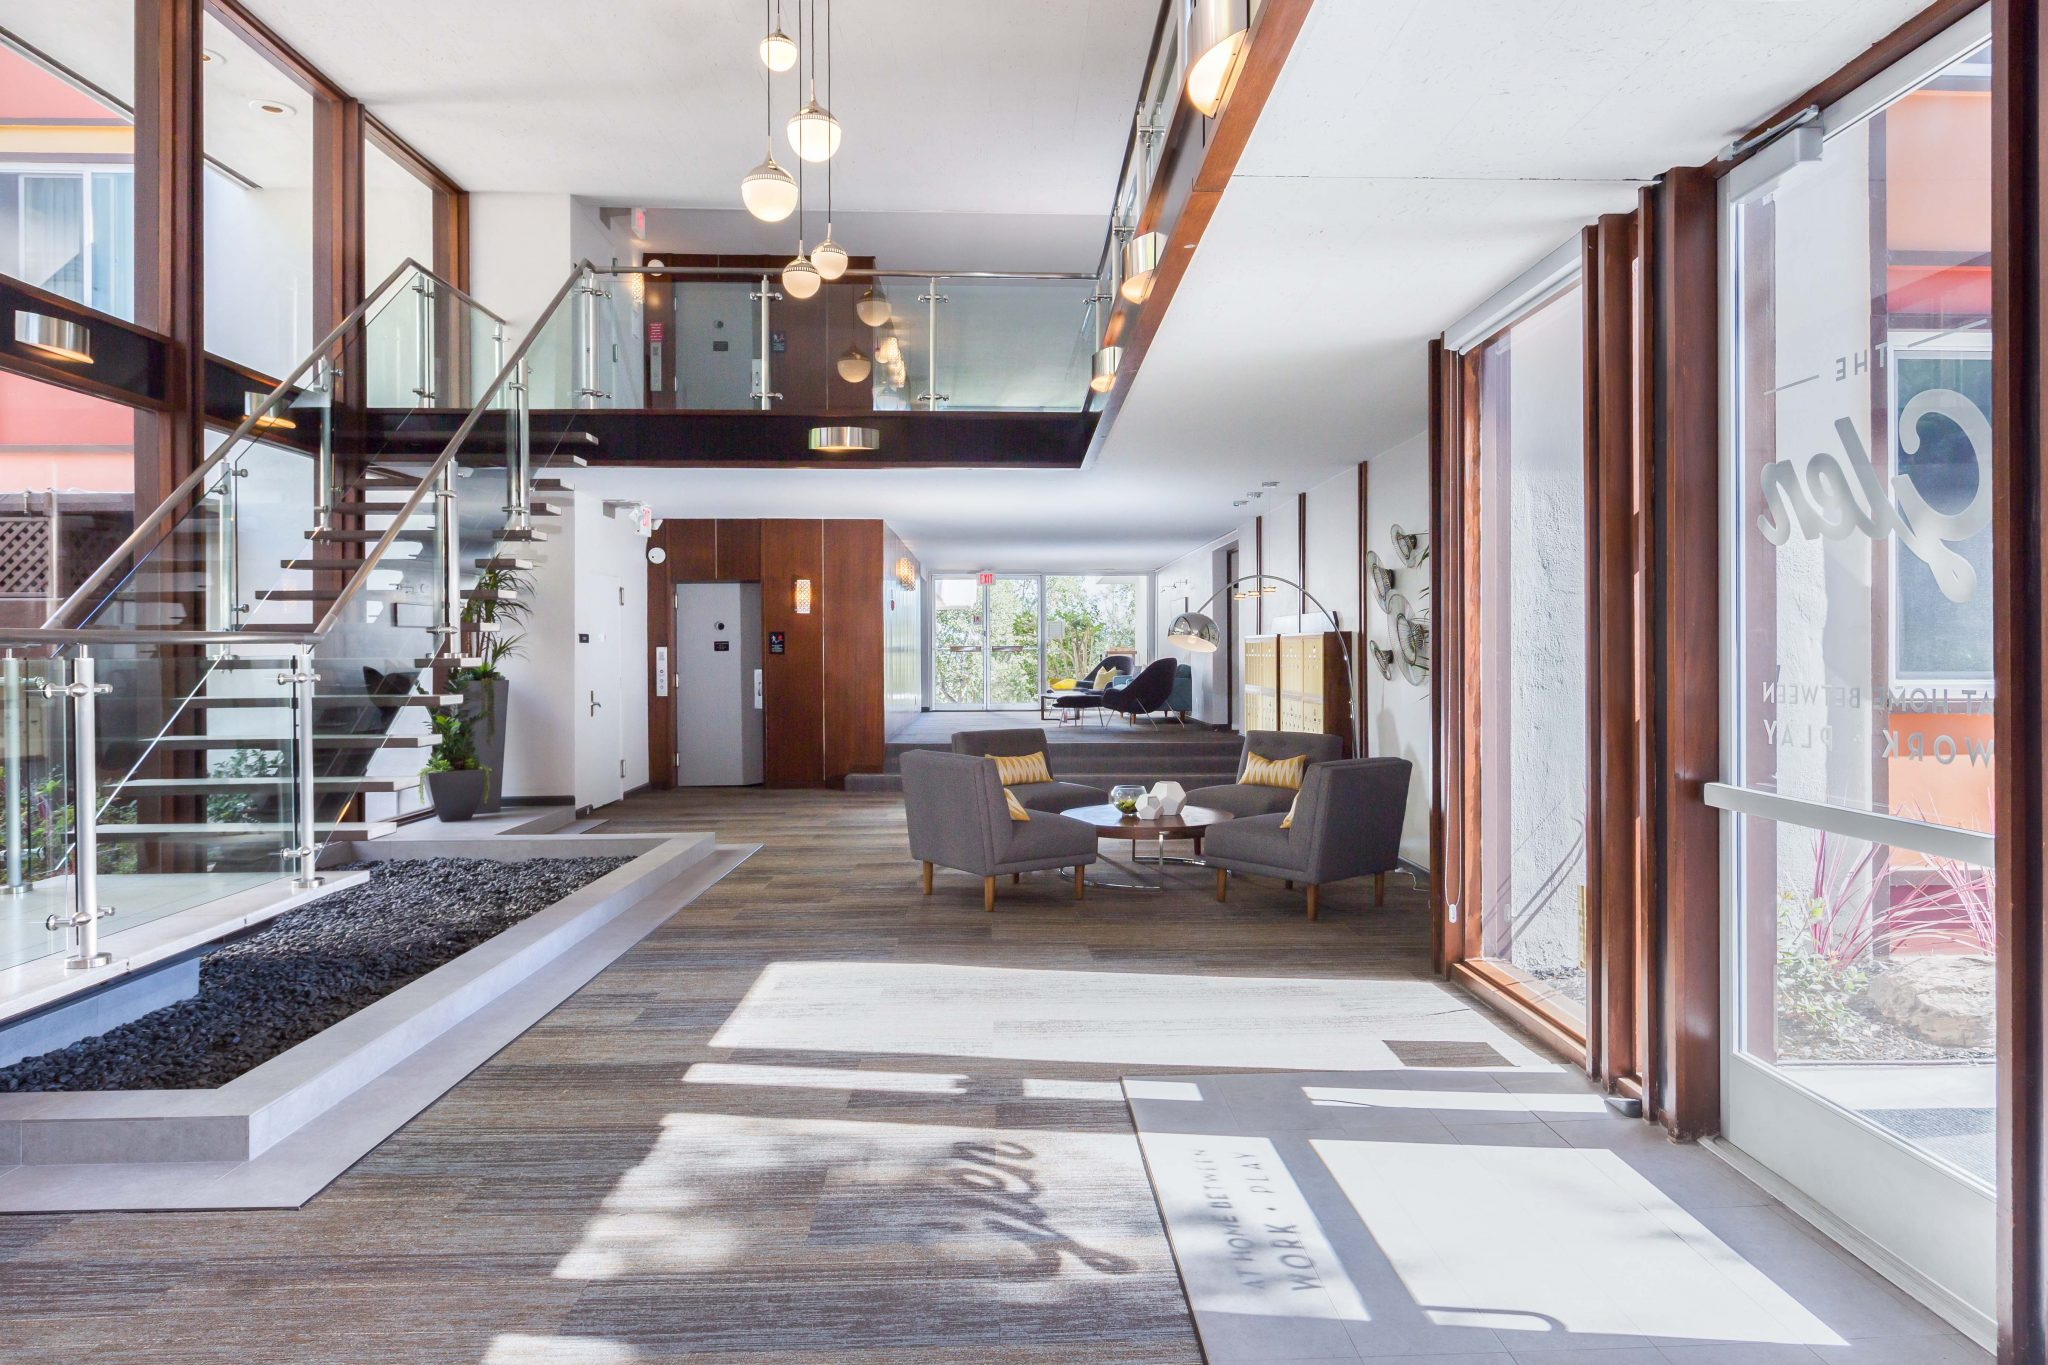 Interior of entrance to apartment complex with large floor-to-ceiling windows, glass stairway, and modern furniture